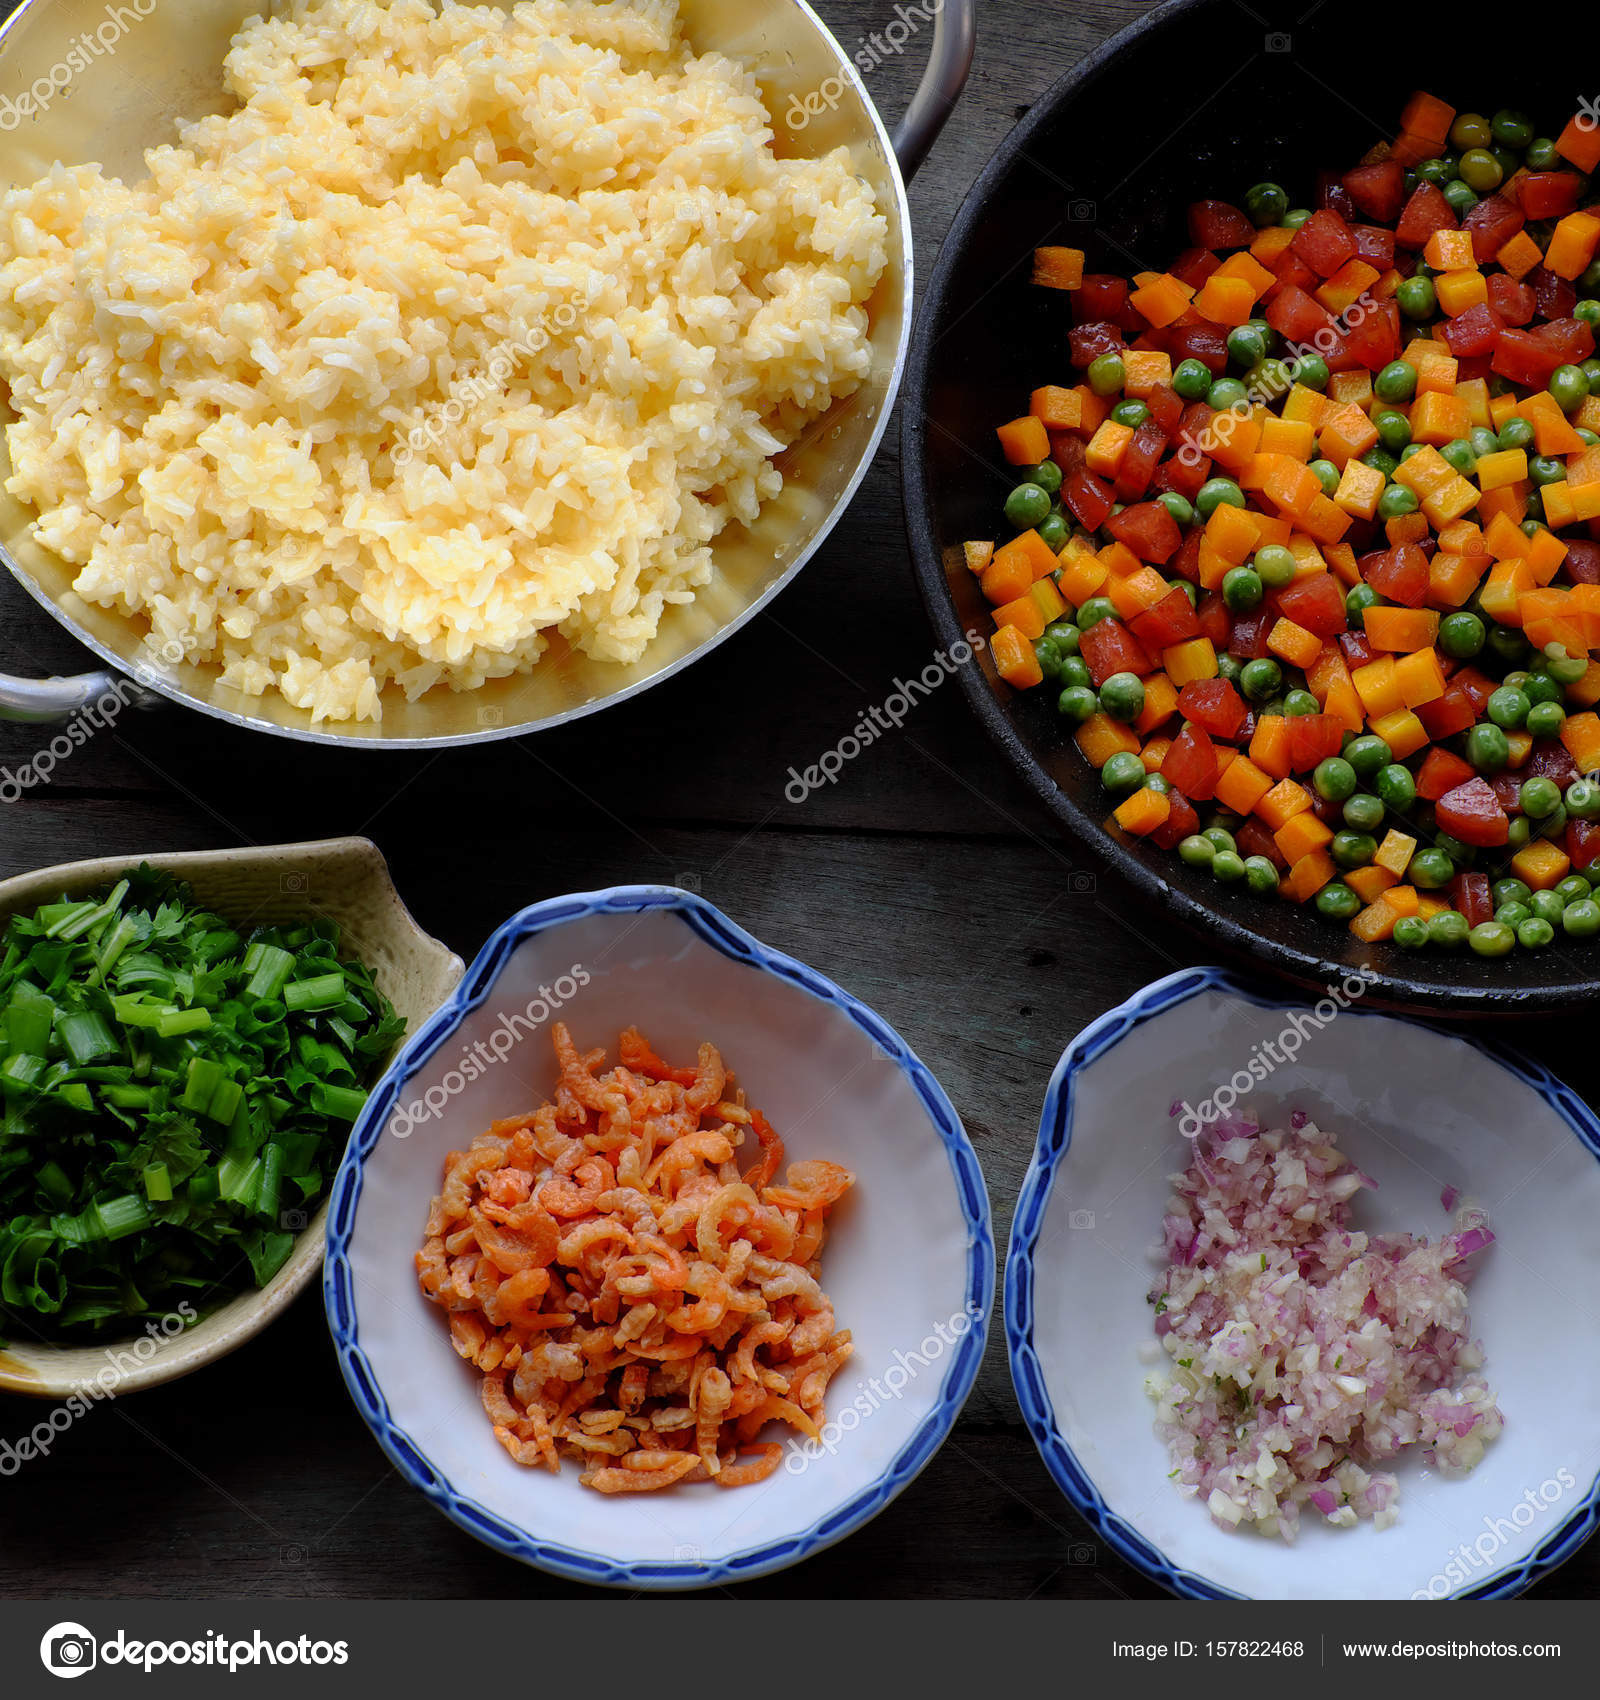 Vietnam food fried rice stock photo xuanhuongho 157822468 vietnam food fried rice make from rice egg sausage dried shrimp bean cucumber tomato carrot and scallion processing with colorful food material on ccuart Images